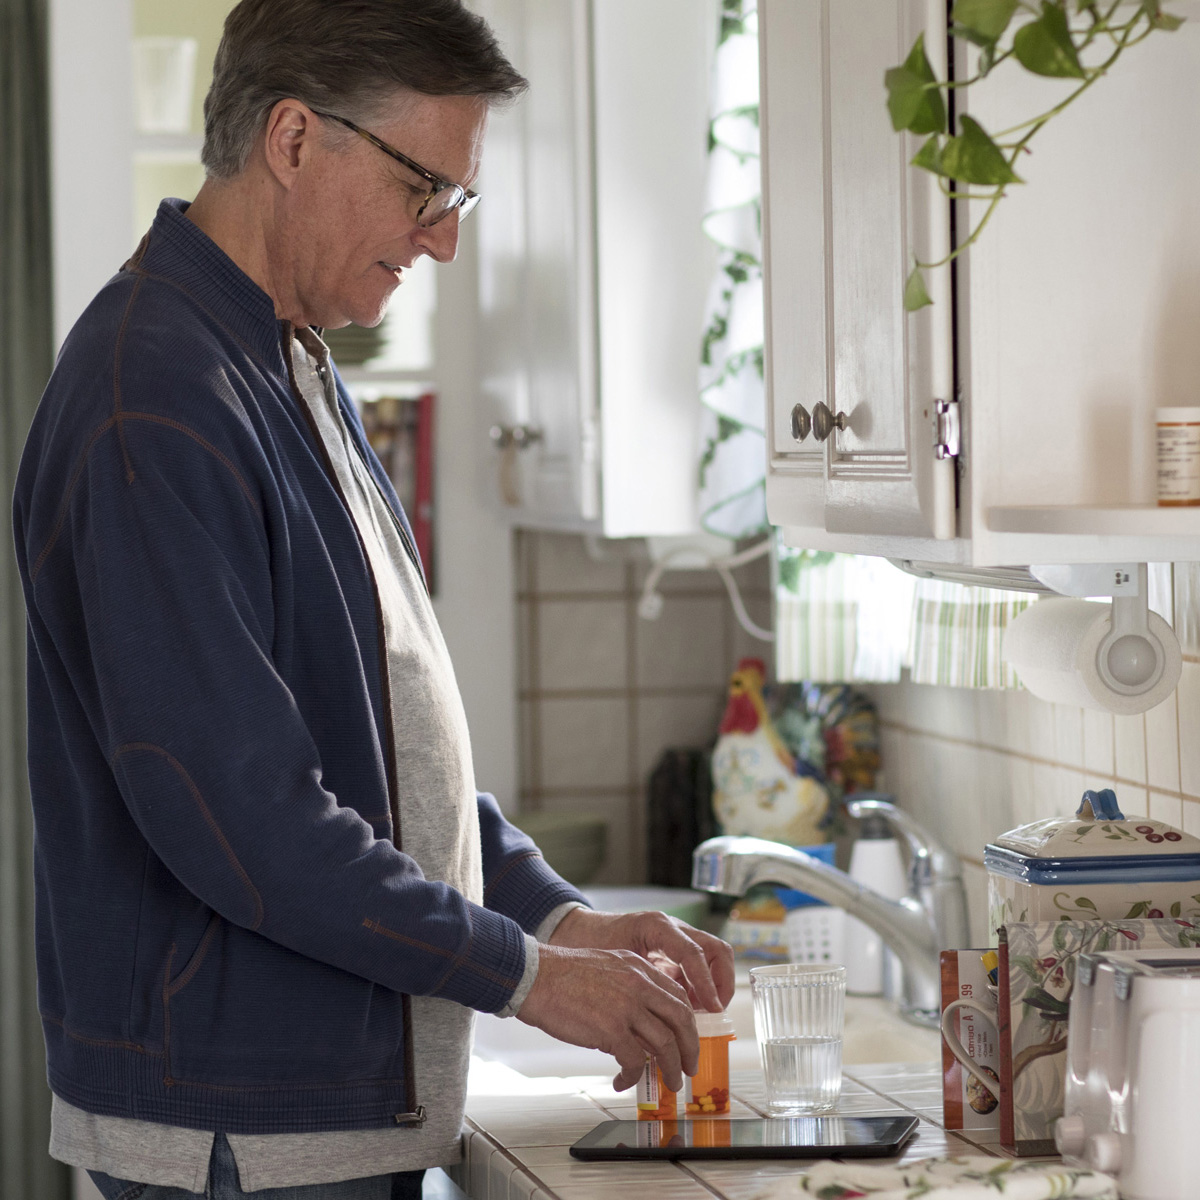 A man stands in front of a kitchen sink while getting ready to take his medicine.